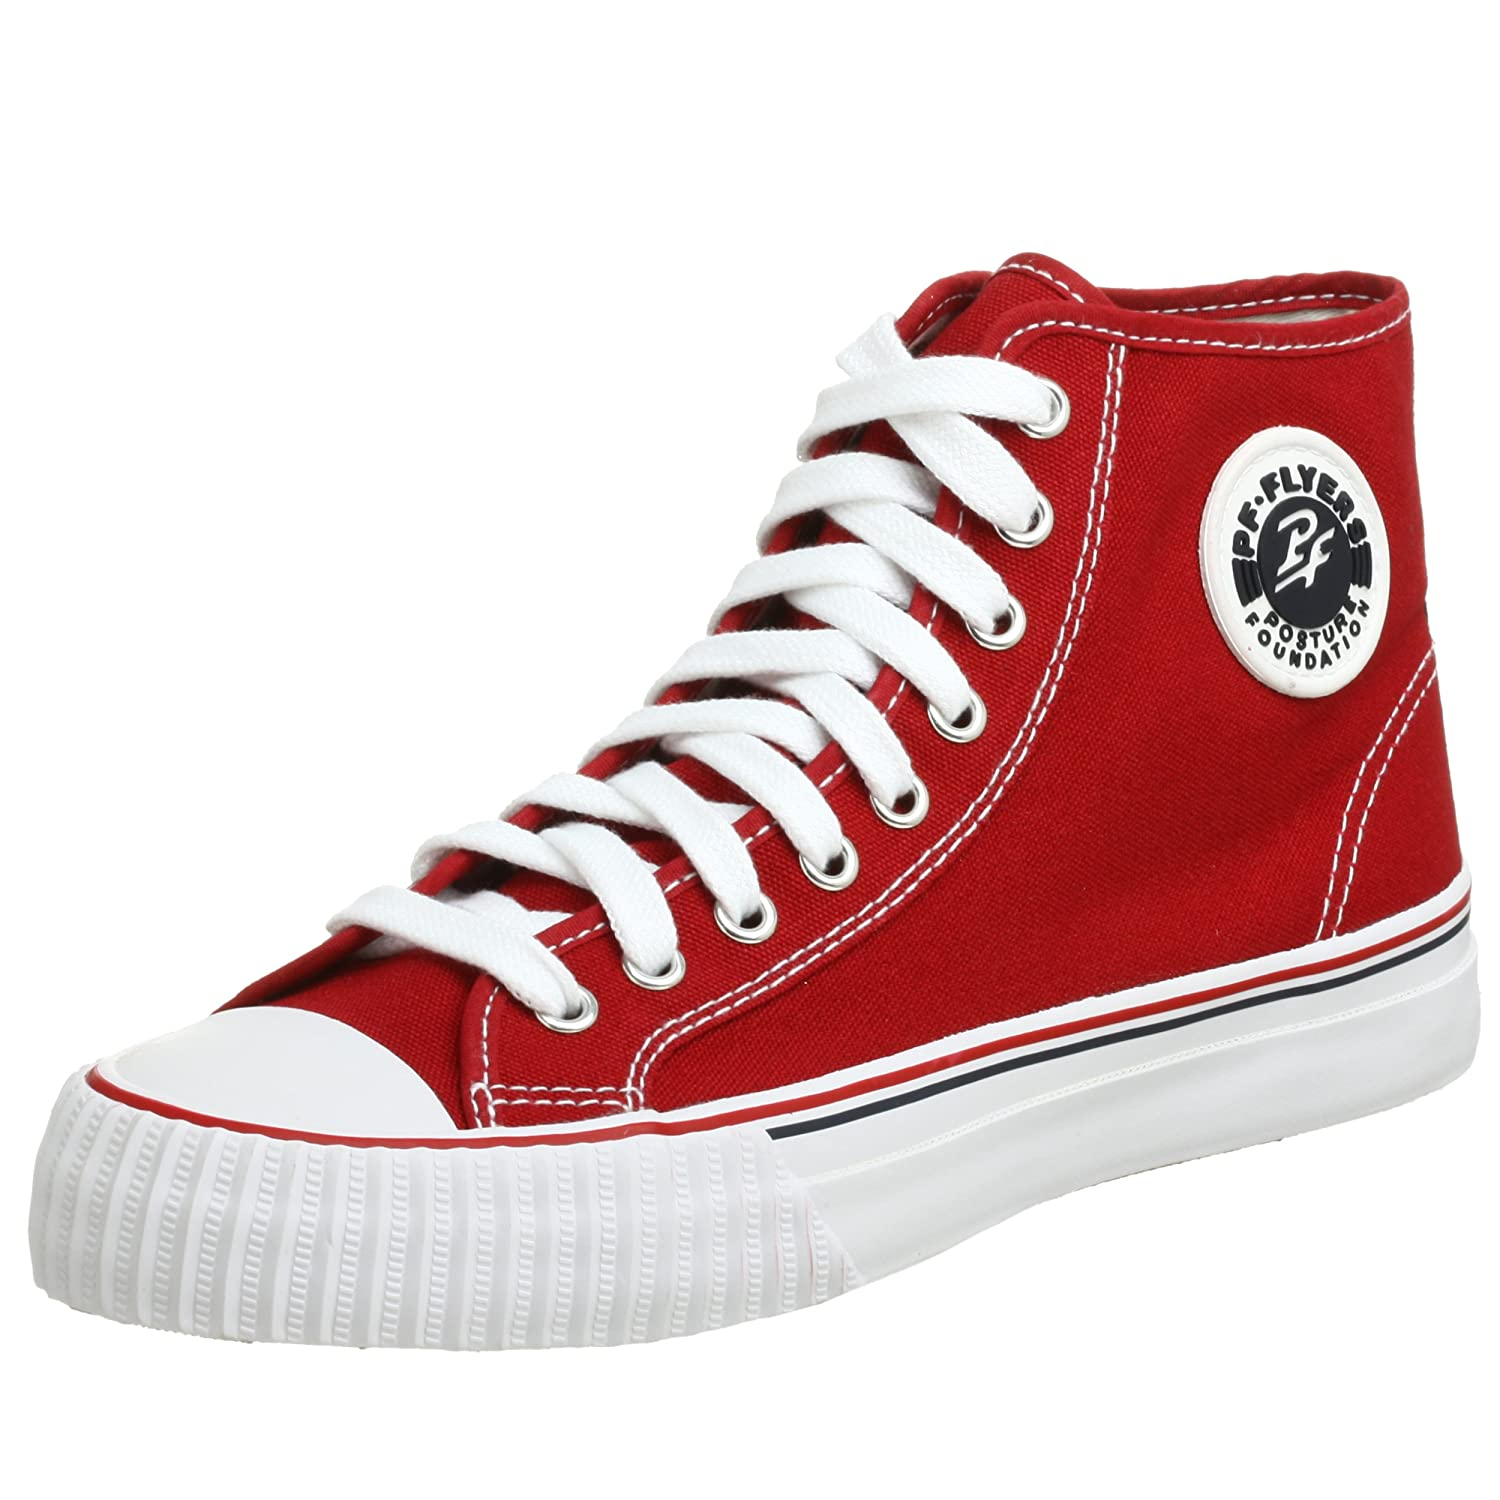 PF Flyers Men's Center Hi Sneaker B0012VF376 8 US Men's/9.5 M US Women's|Red